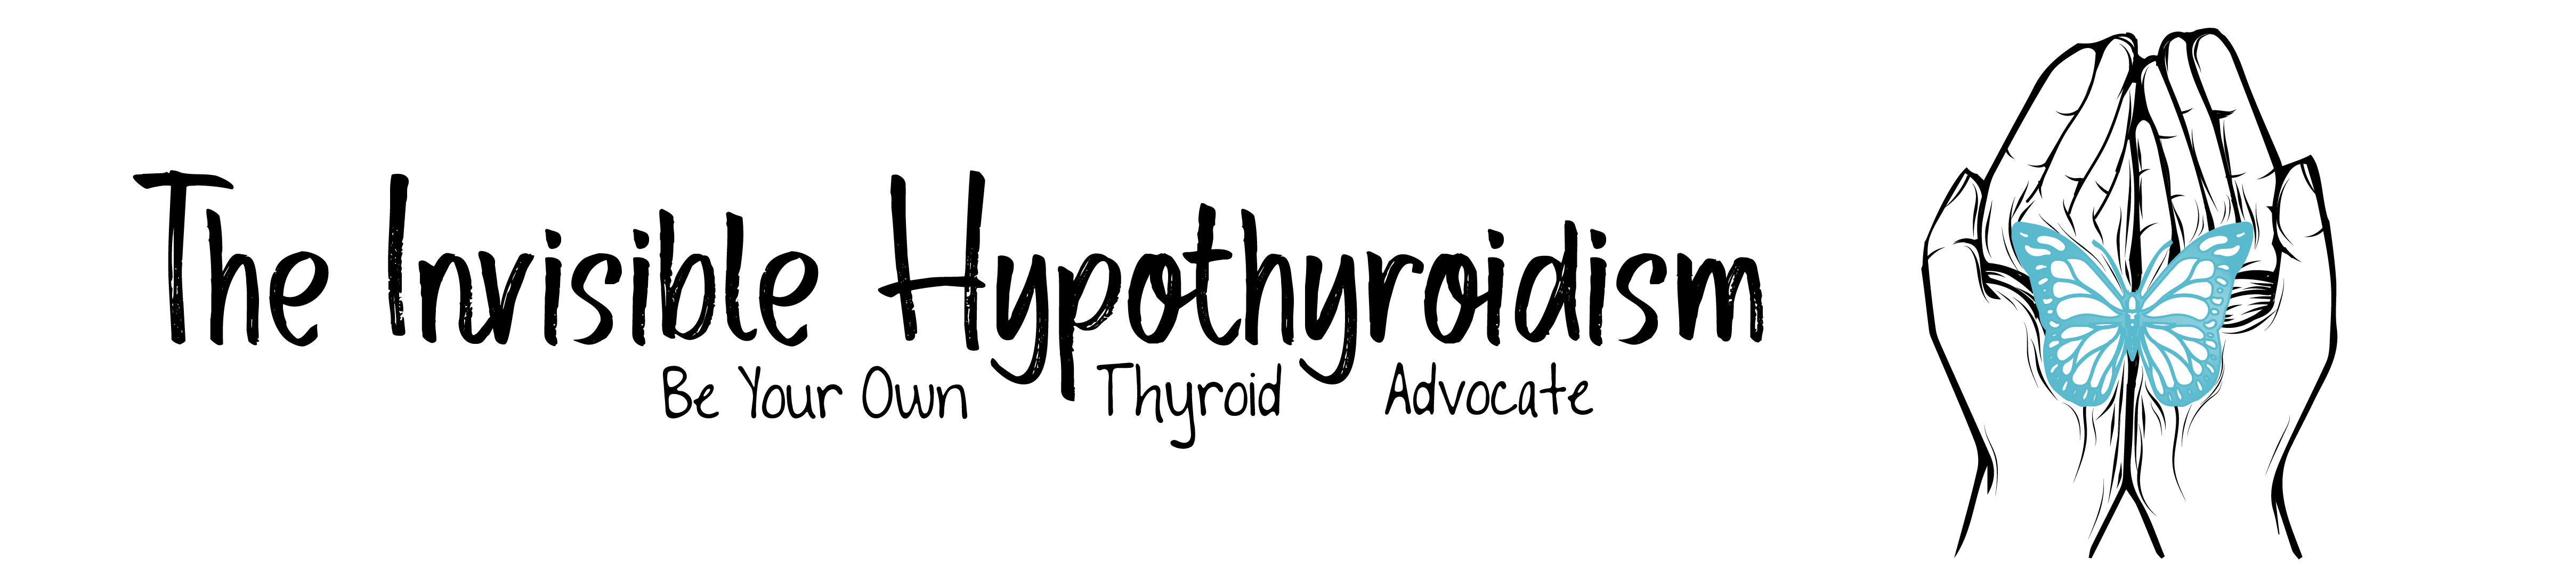 The Invisible Hypothyroidism Newsletter